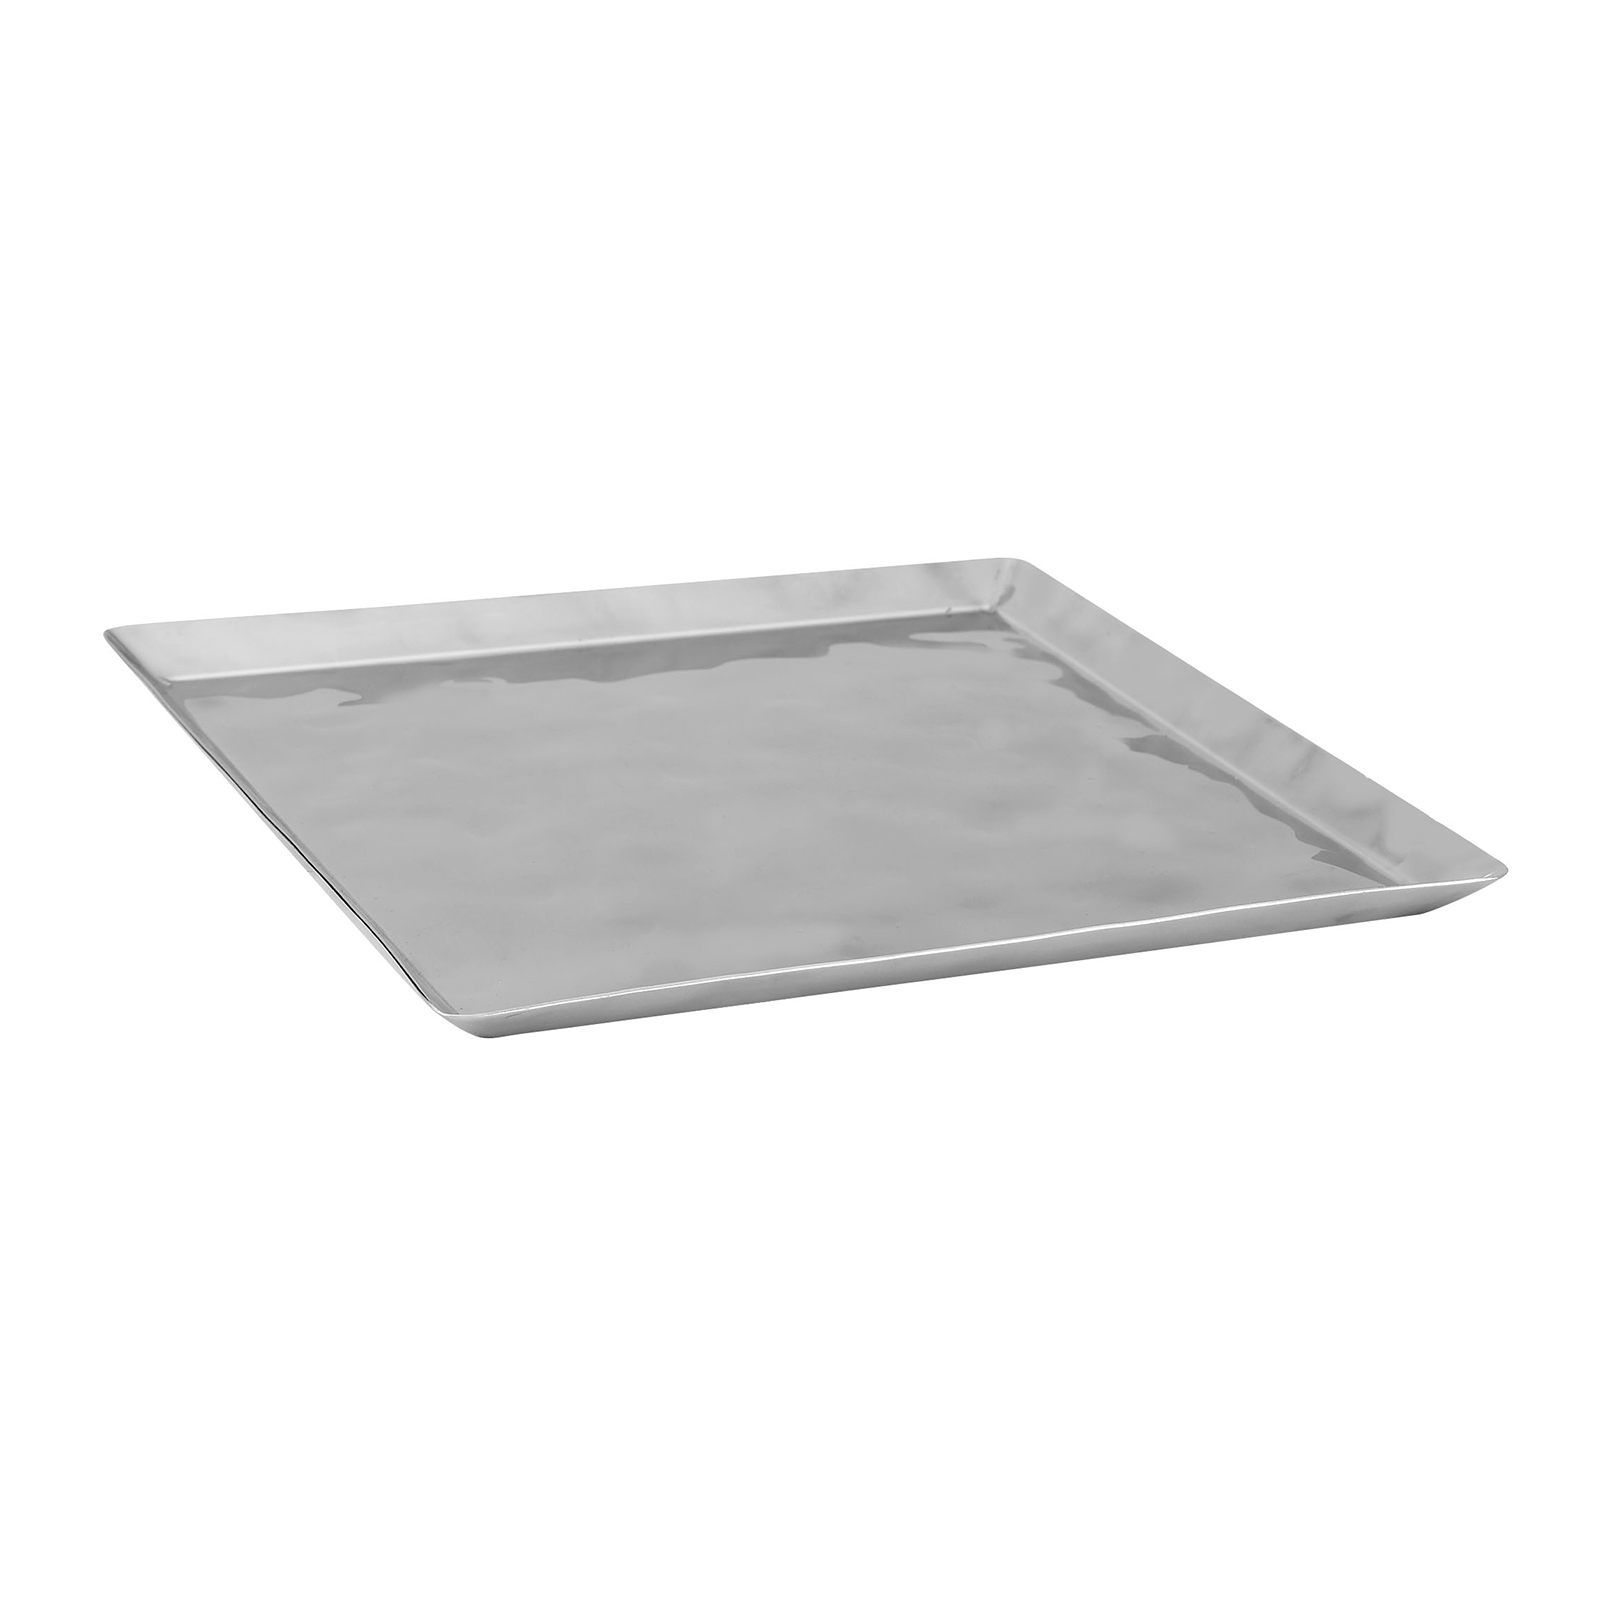 Winco HPS-12 display tray, market / bakery